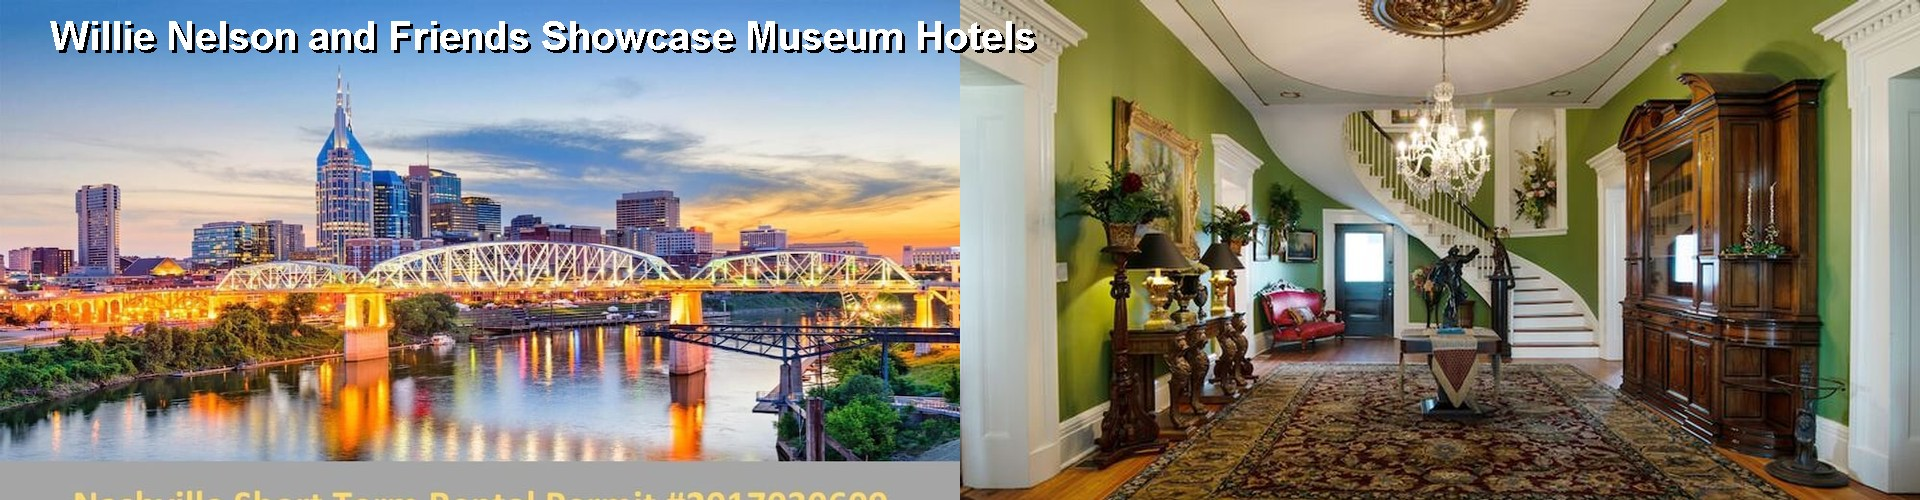 5 Best Hotels near Willie Nelson and Friends Showcase Museum